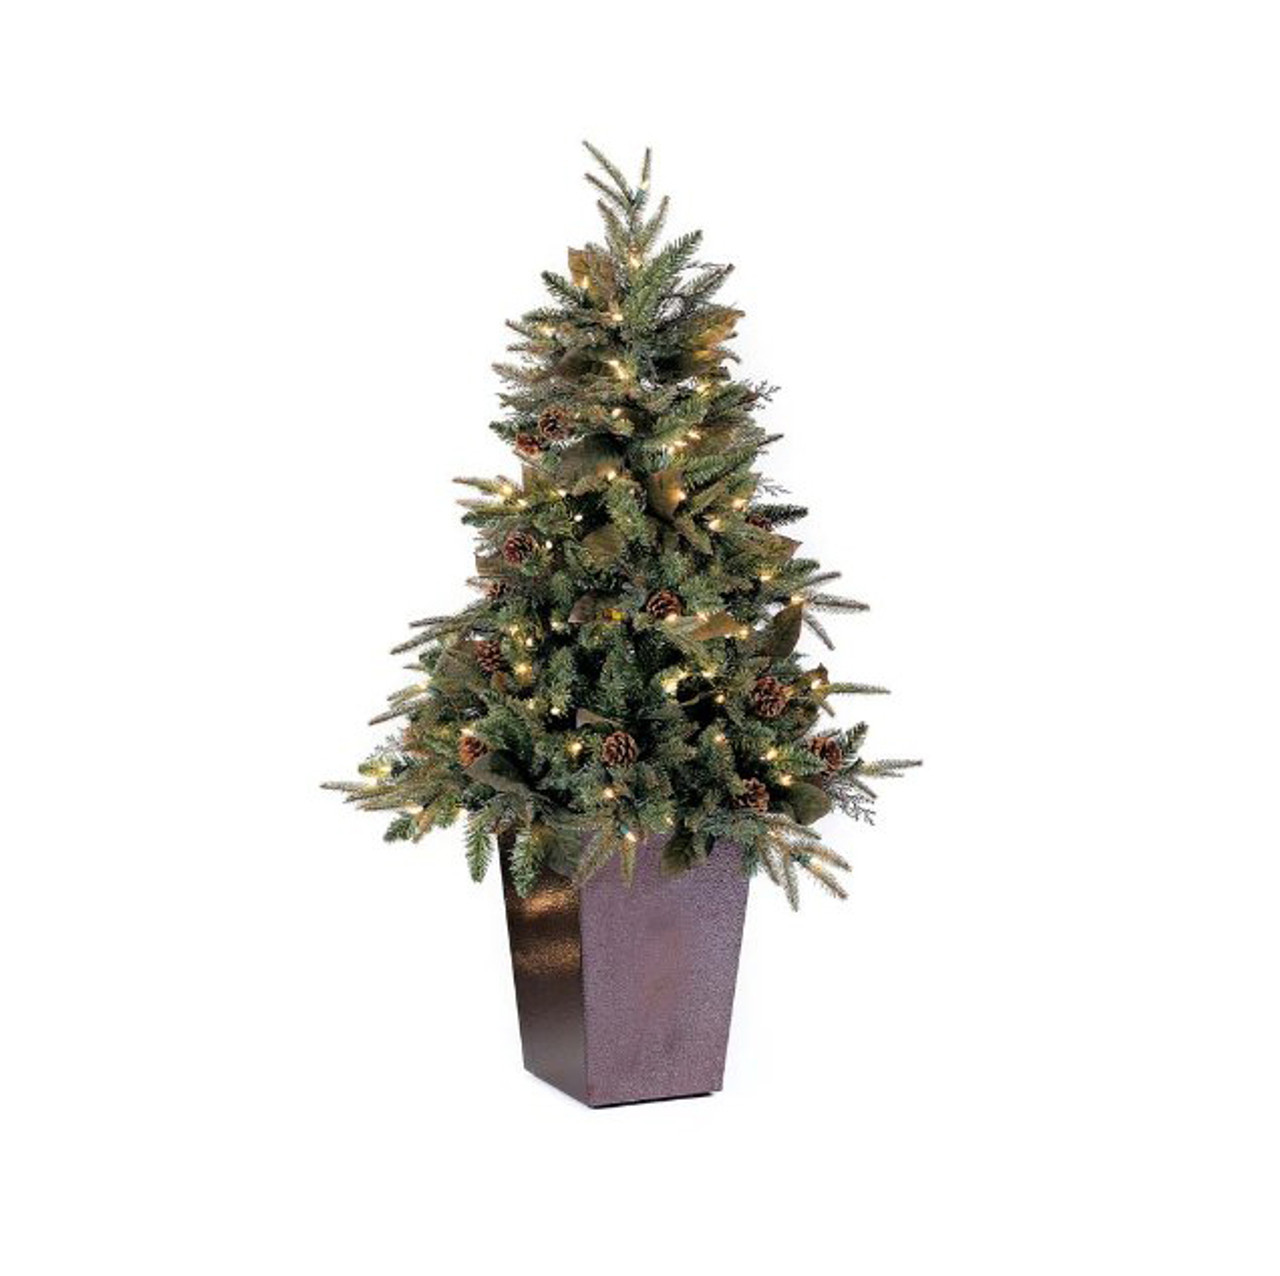 5 potted pre lit green river spruce medium artificial christmas tree clear lights 31734317 - Potted Artificial Christmas Trees